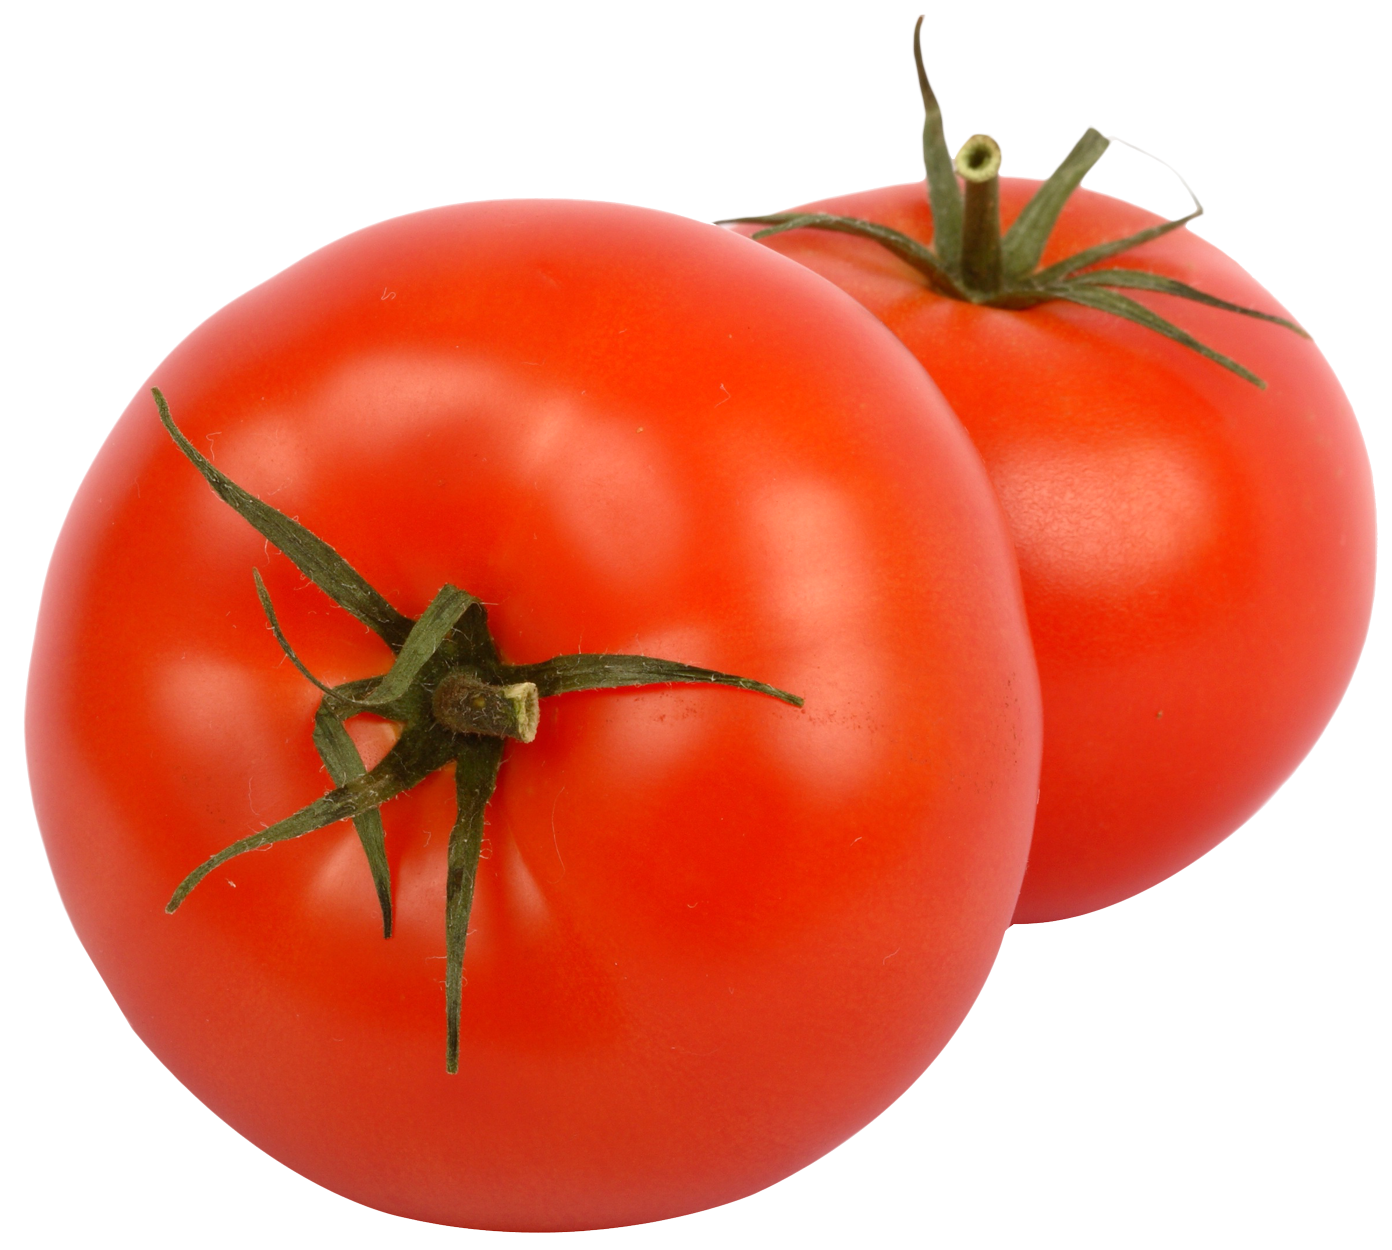 Hq png transparent images. Tomatoes clipart happy tomato